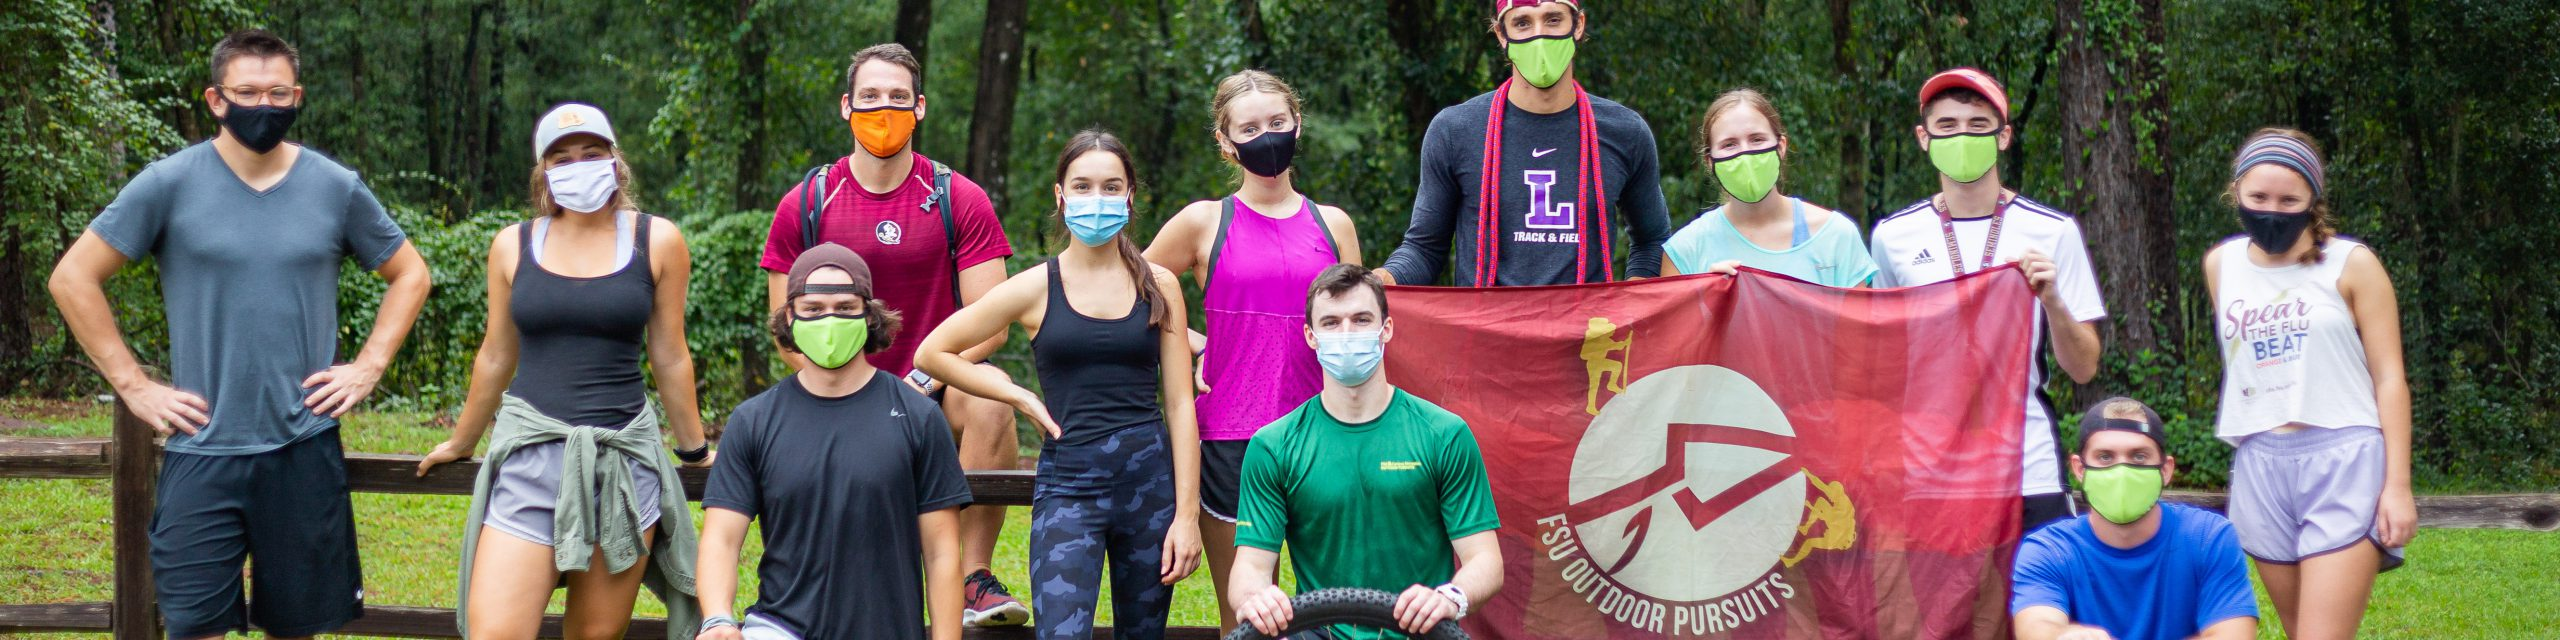 A group of masked people holding the outdoor pursuits banner.